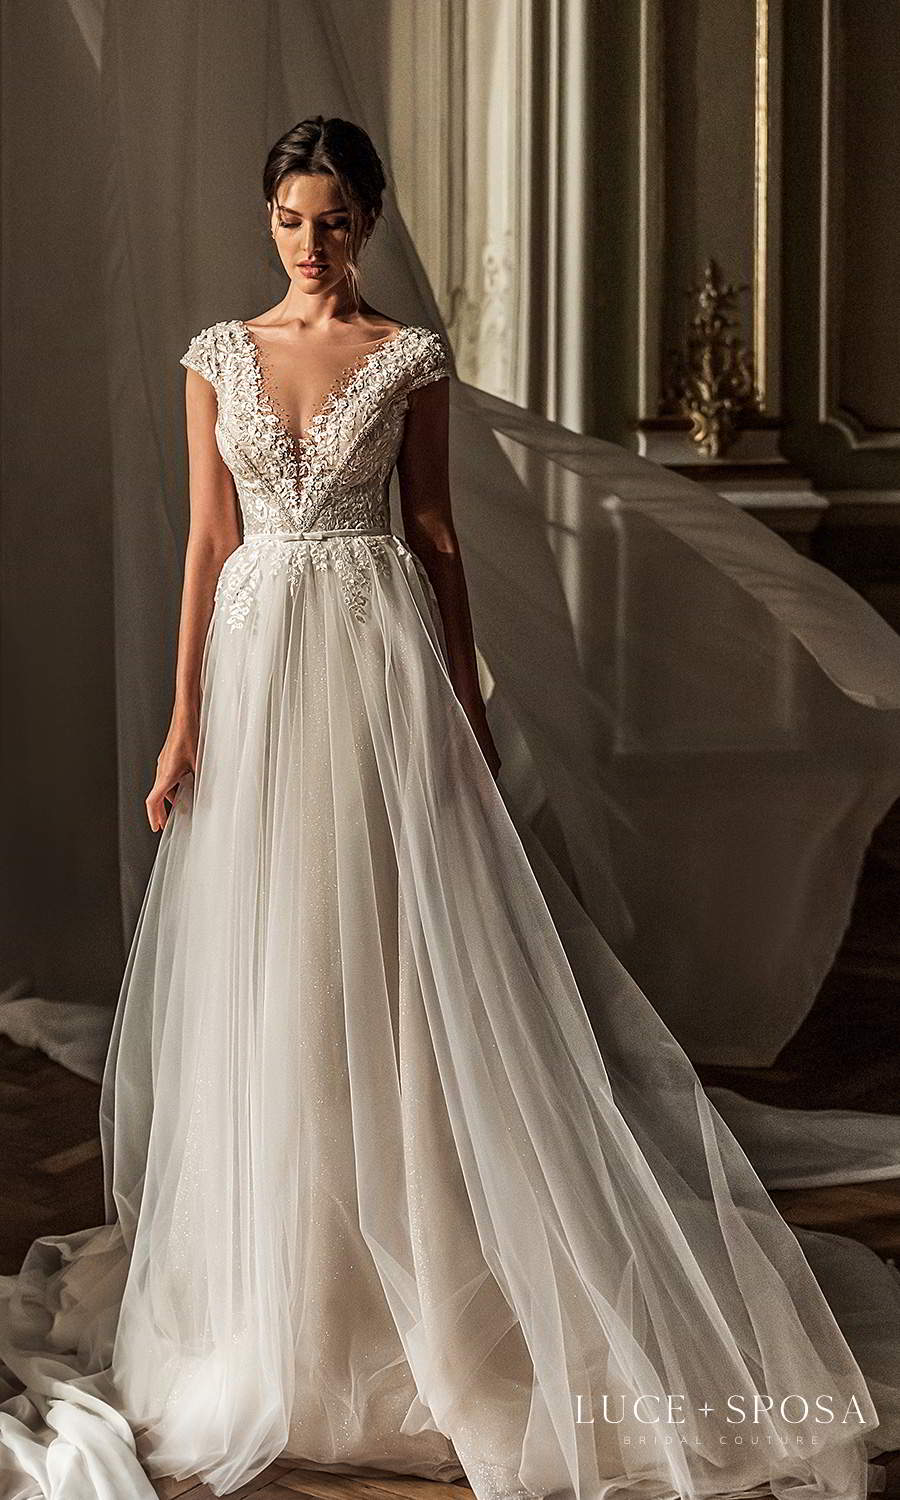 luce sposa 2021 shades of couture bridal cap v neckline heavily embellished bodice a line ball gown wedding dress (serenity) mv